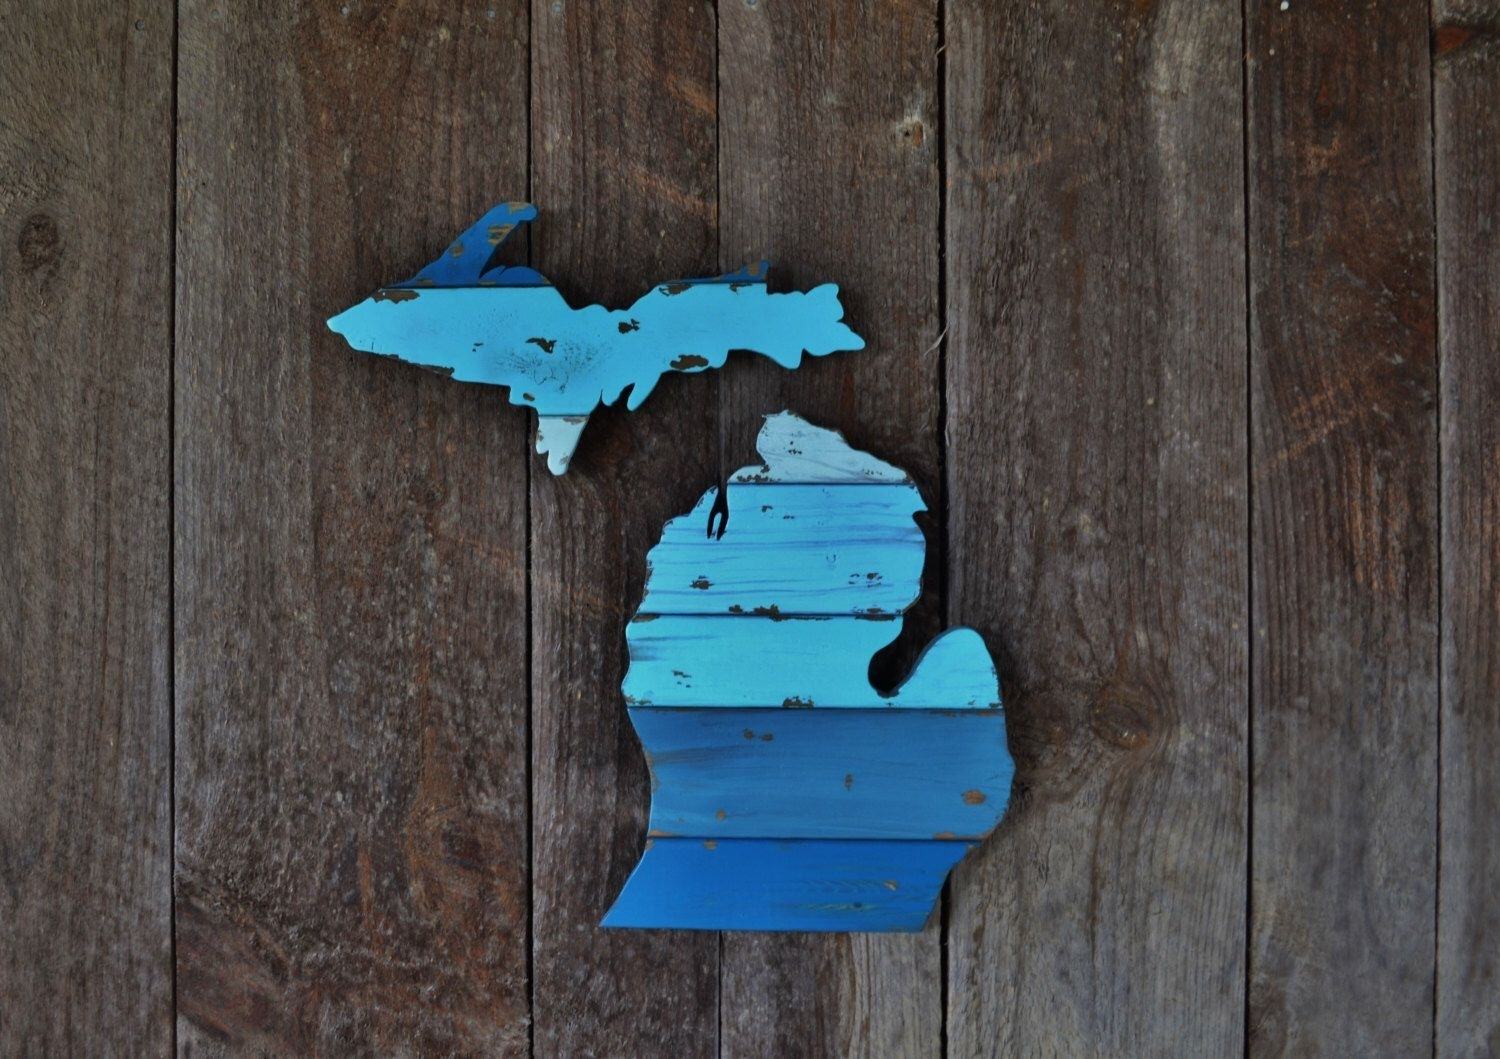 Hand Cut Wooden Michigan Wall Art: The Lelandthewoodnwall On Intended For Most Up To Date Michigan Wall Art (View 11 of 20)